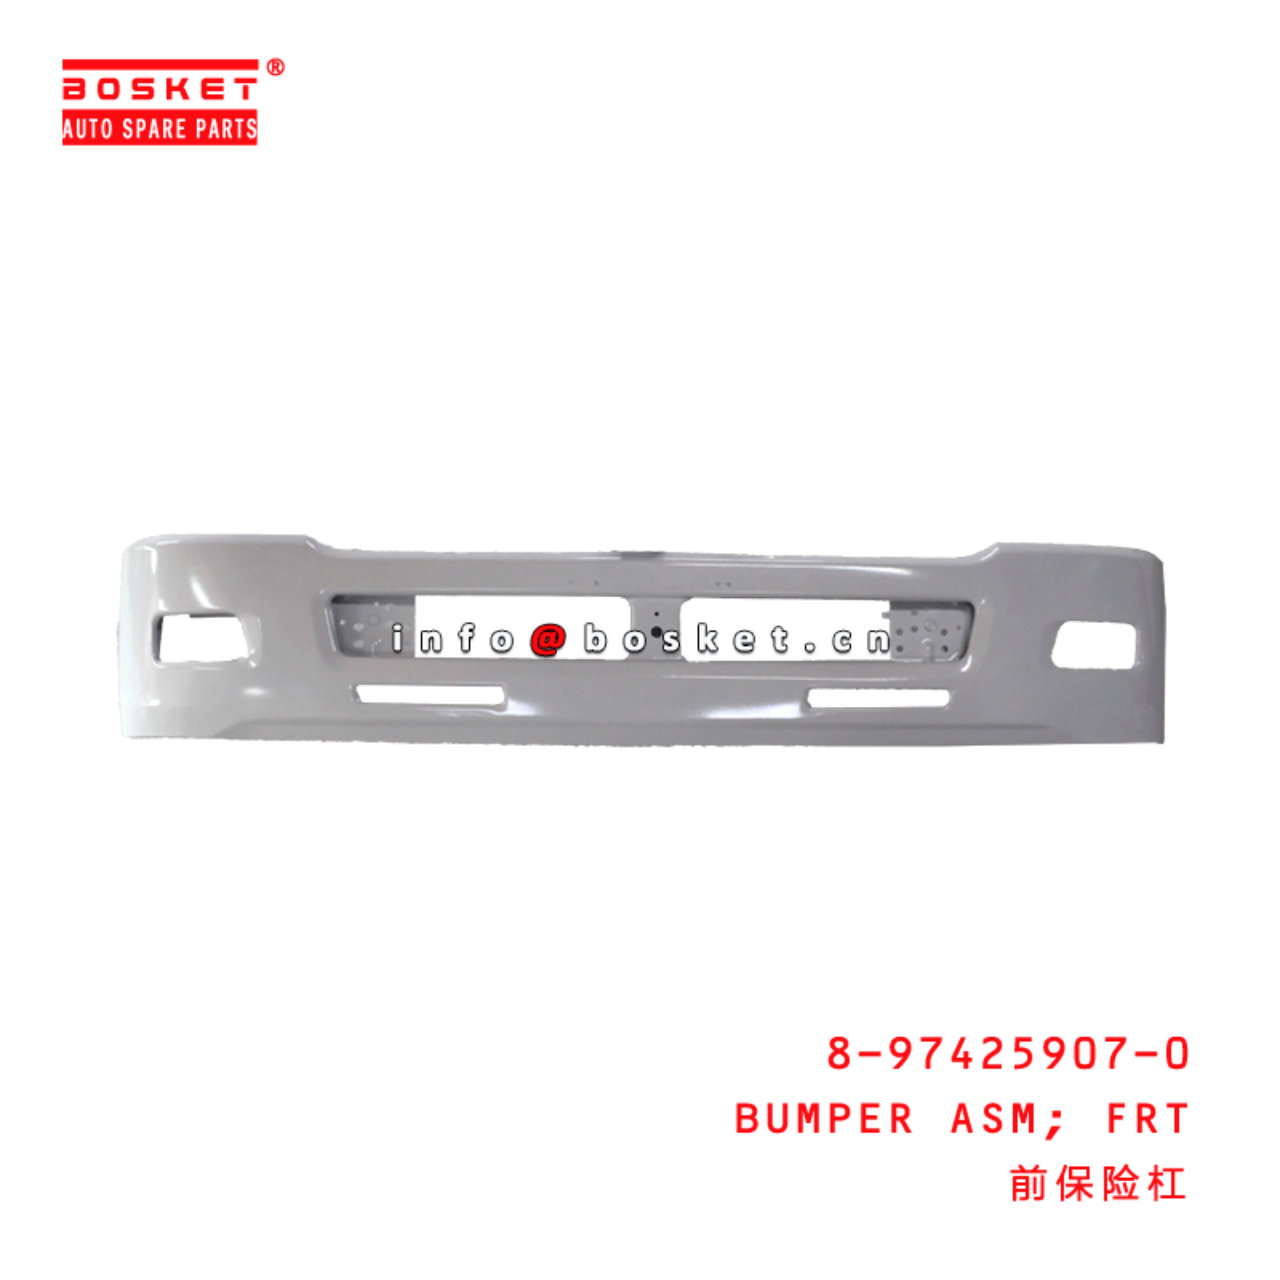 8-97425907-0 Front Bumper Assembly 8974259070 Suitable for ISUZU FSR90